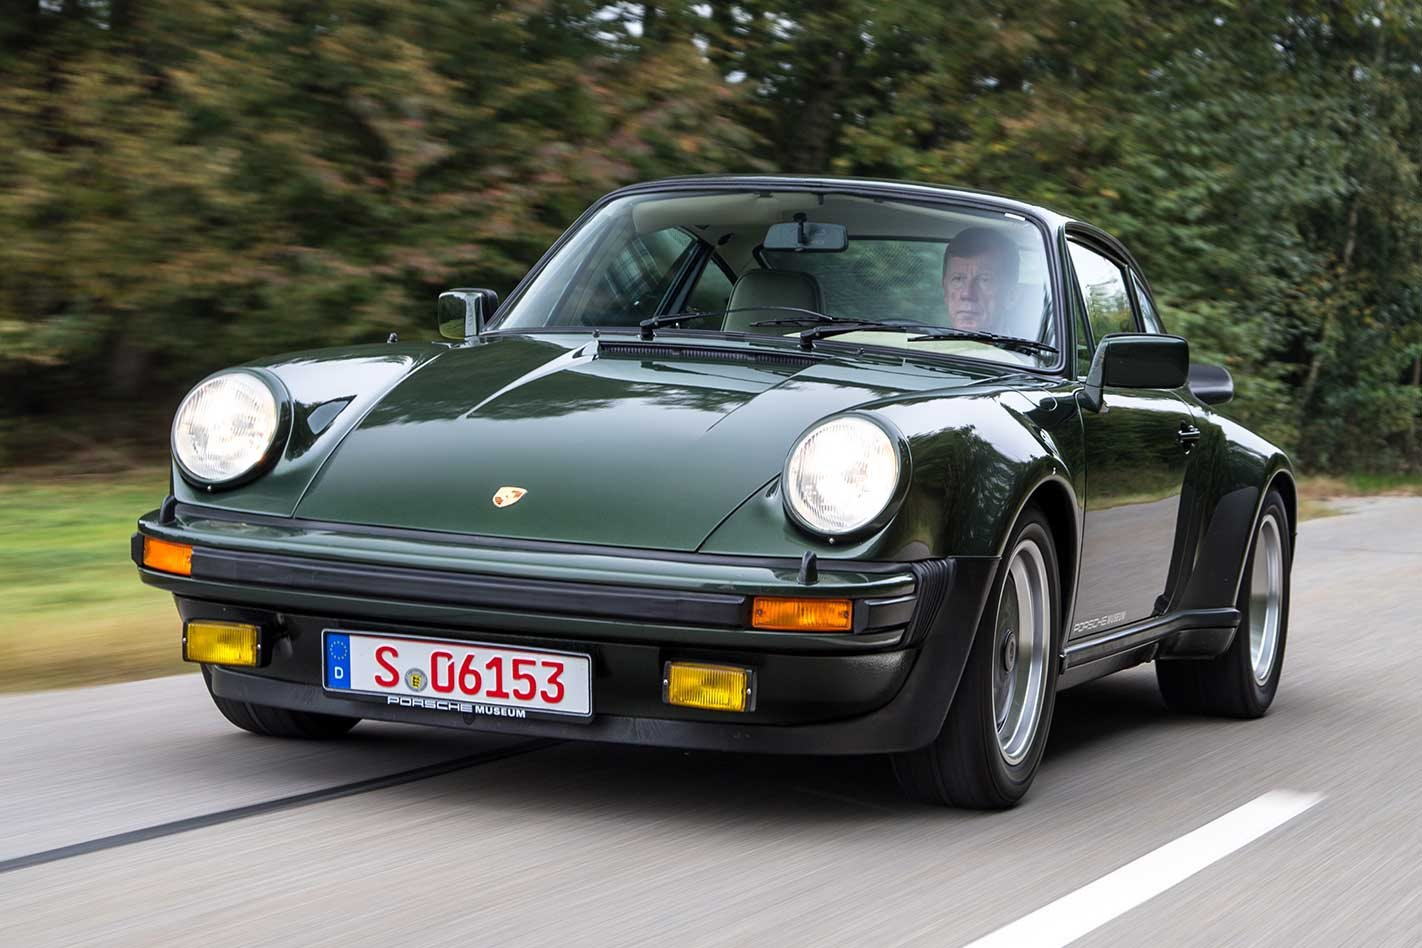 1975 Porsche 911 930 Turbo The Five Greatest 911s